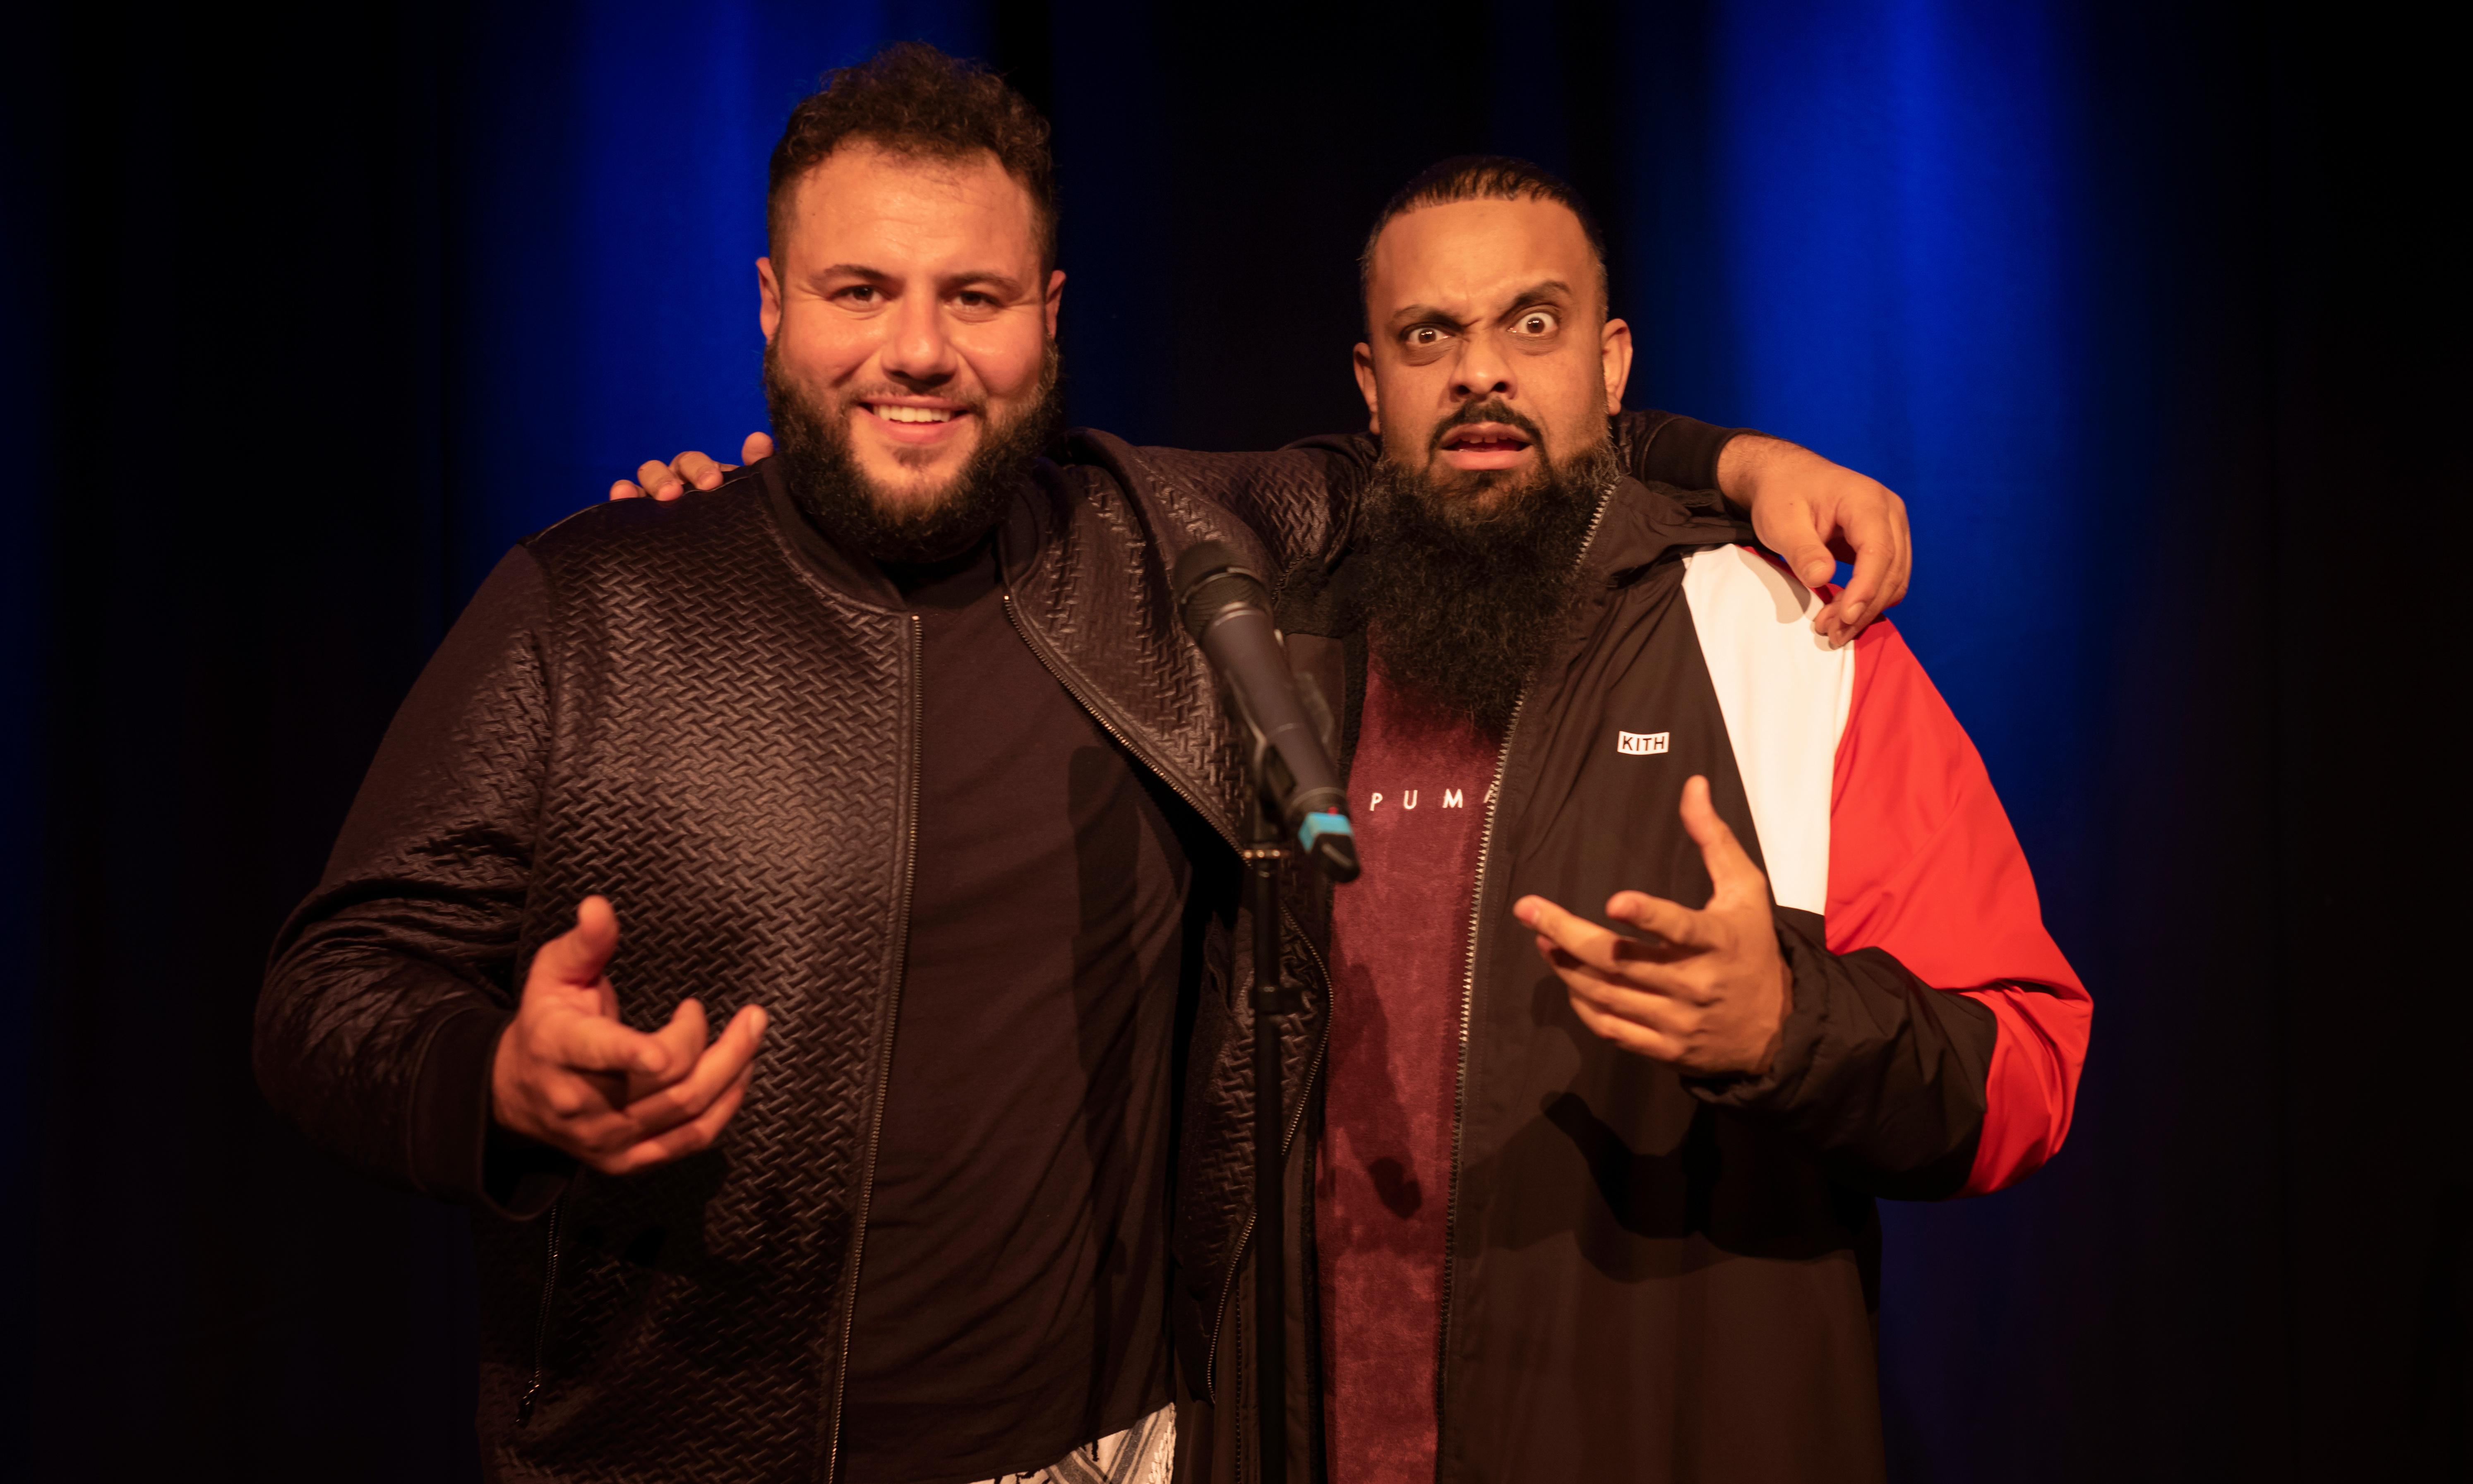 Mo Amer and Guz Khan review – hip-hop and hummus in a double dose of funny